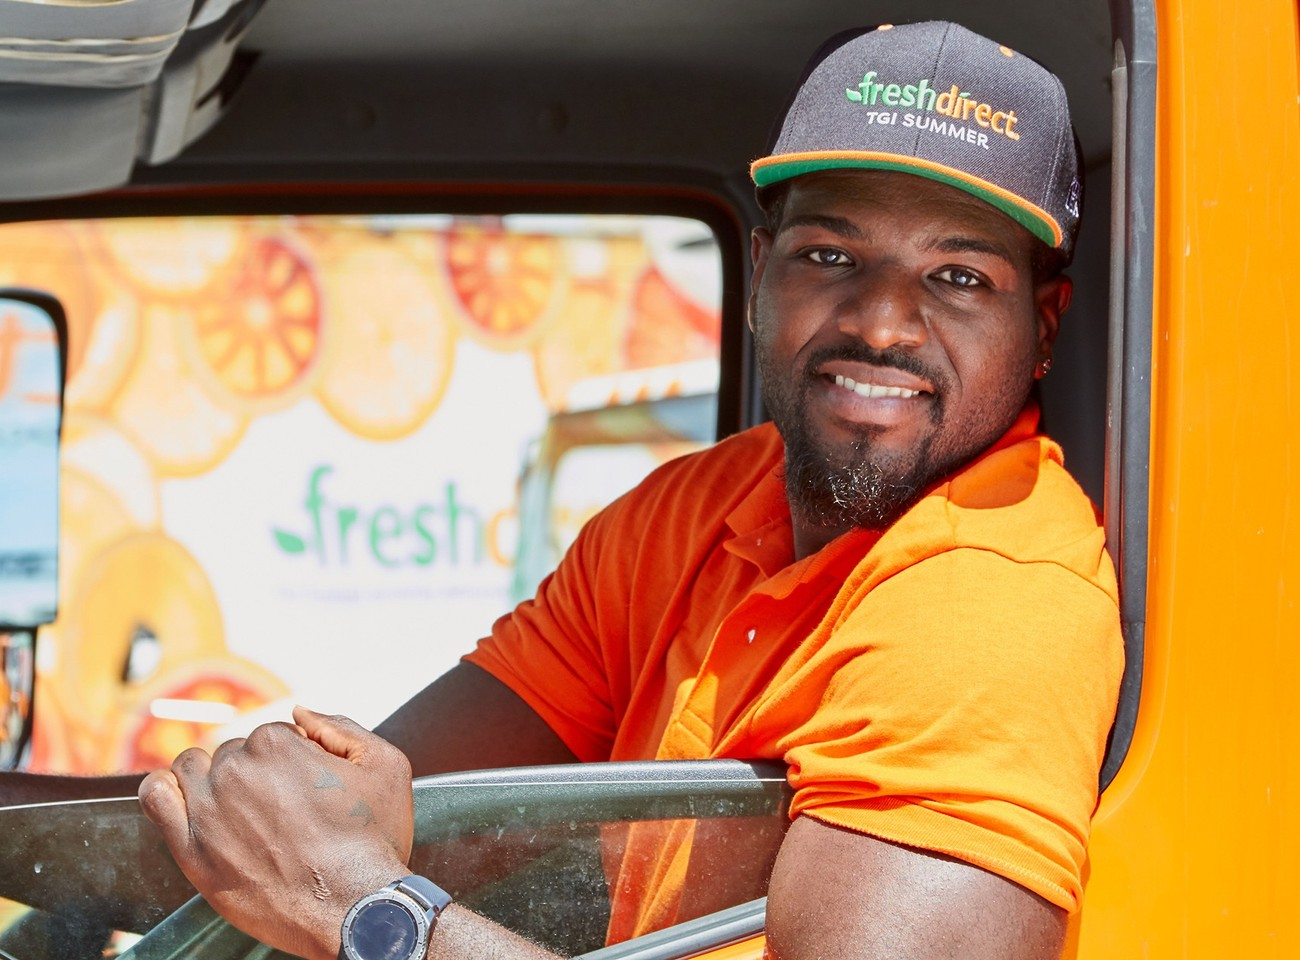 FreshDirect & FoodKick Careers